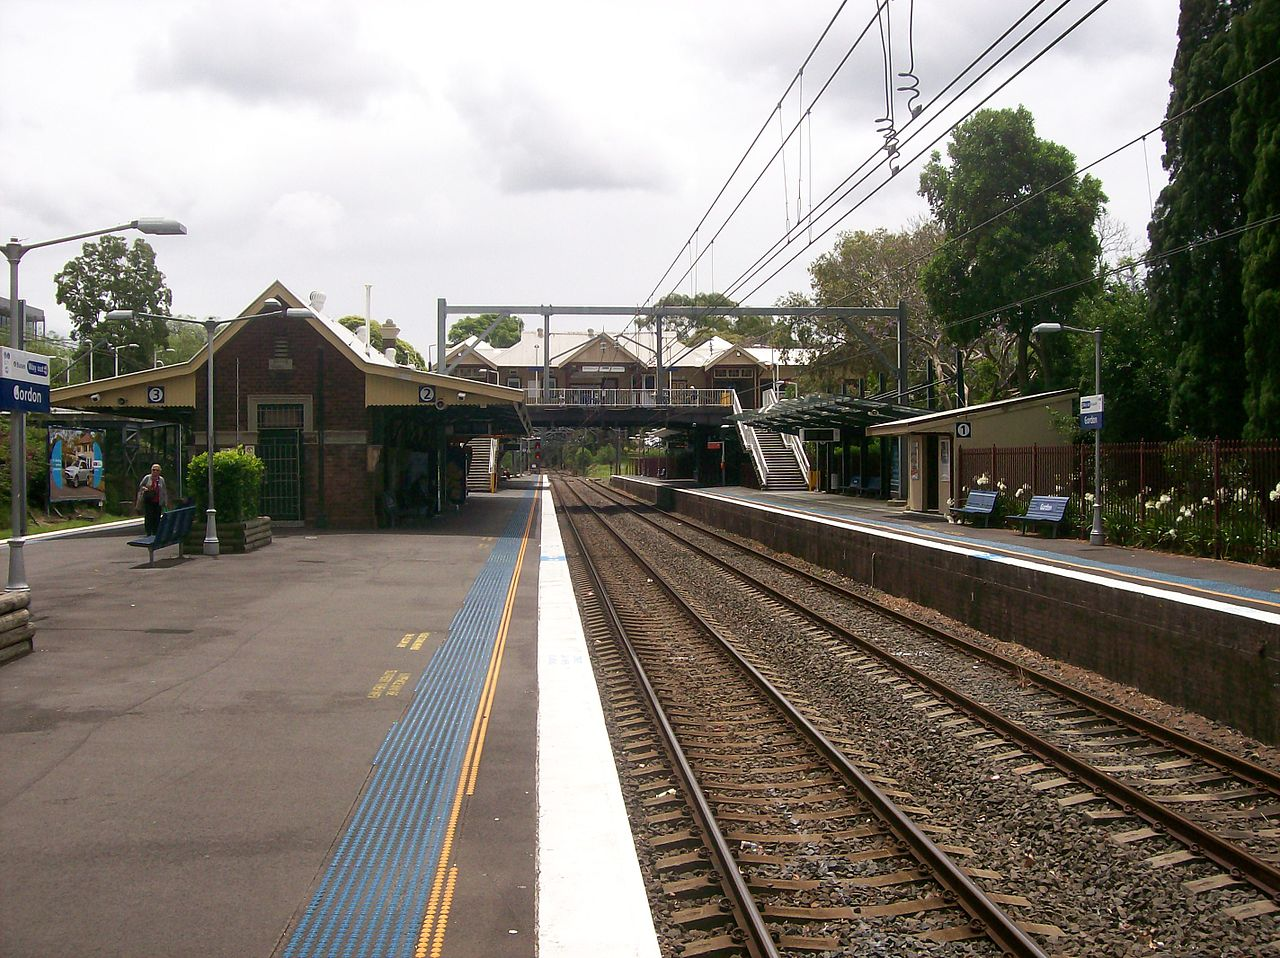 Gordon railway station